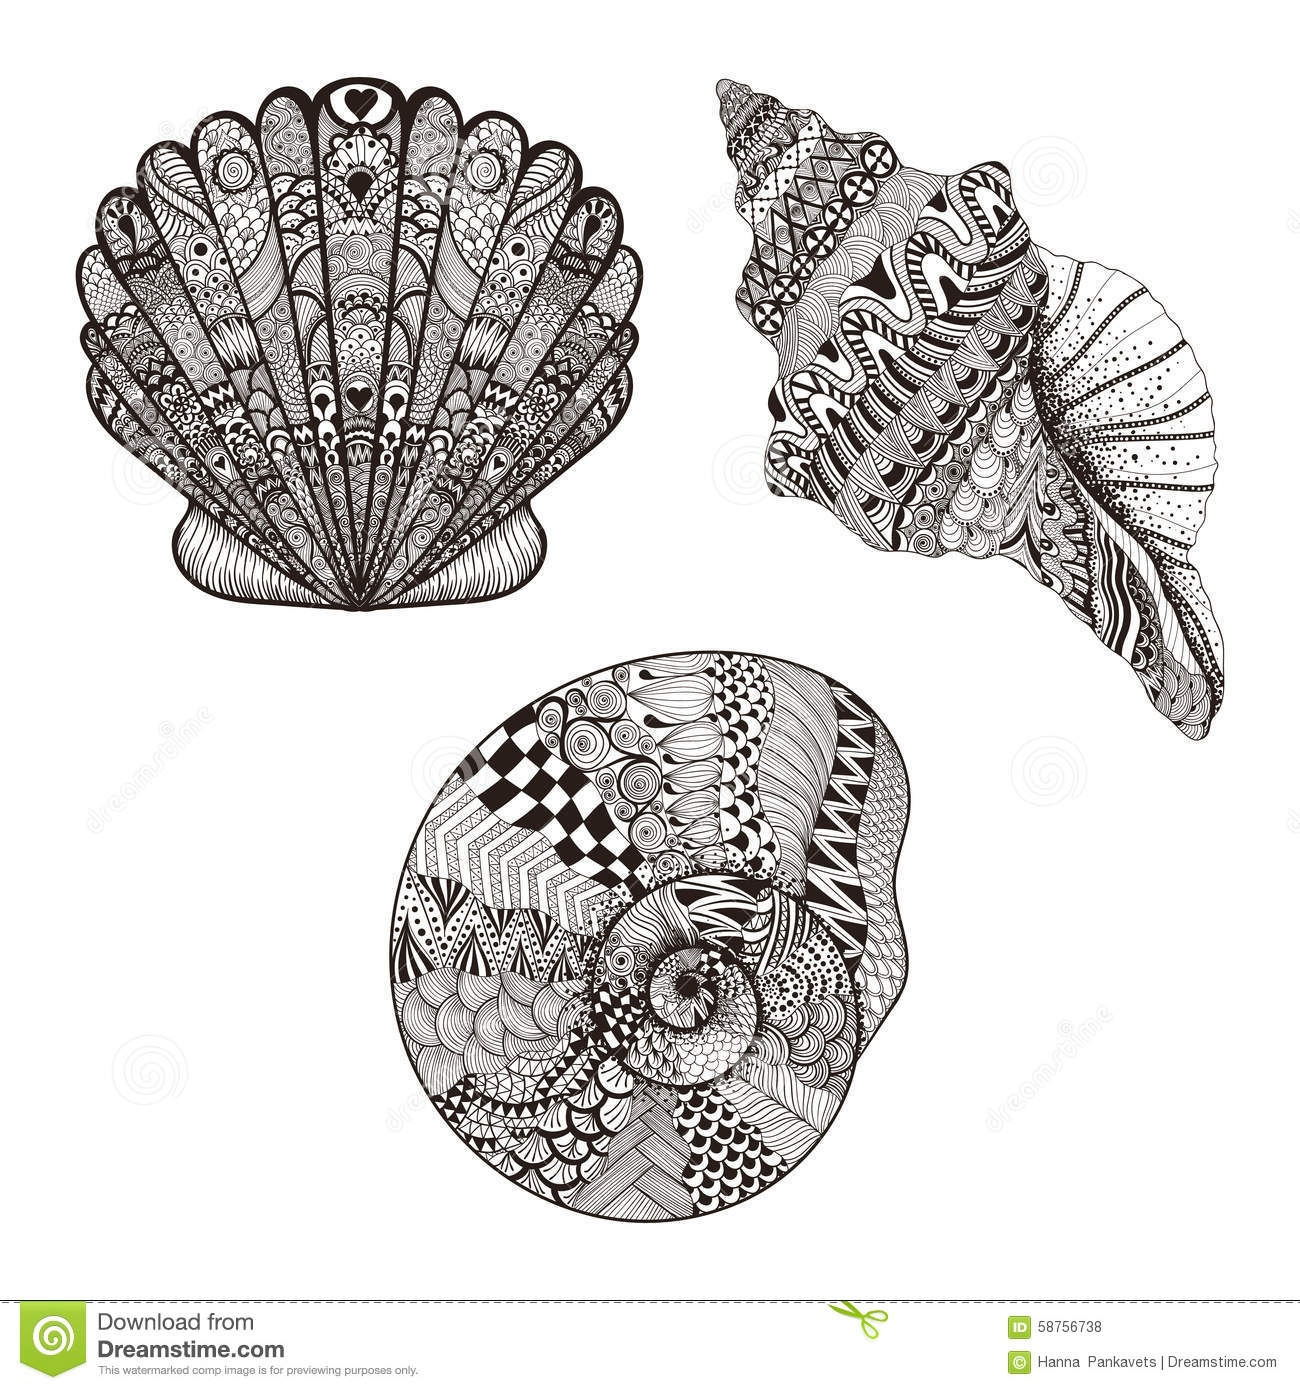 seashell coloring page - stock illustration zentangle stylized set seashells hand drawn vector illustration isolated white backgrounds sketch tattoo makhenda image